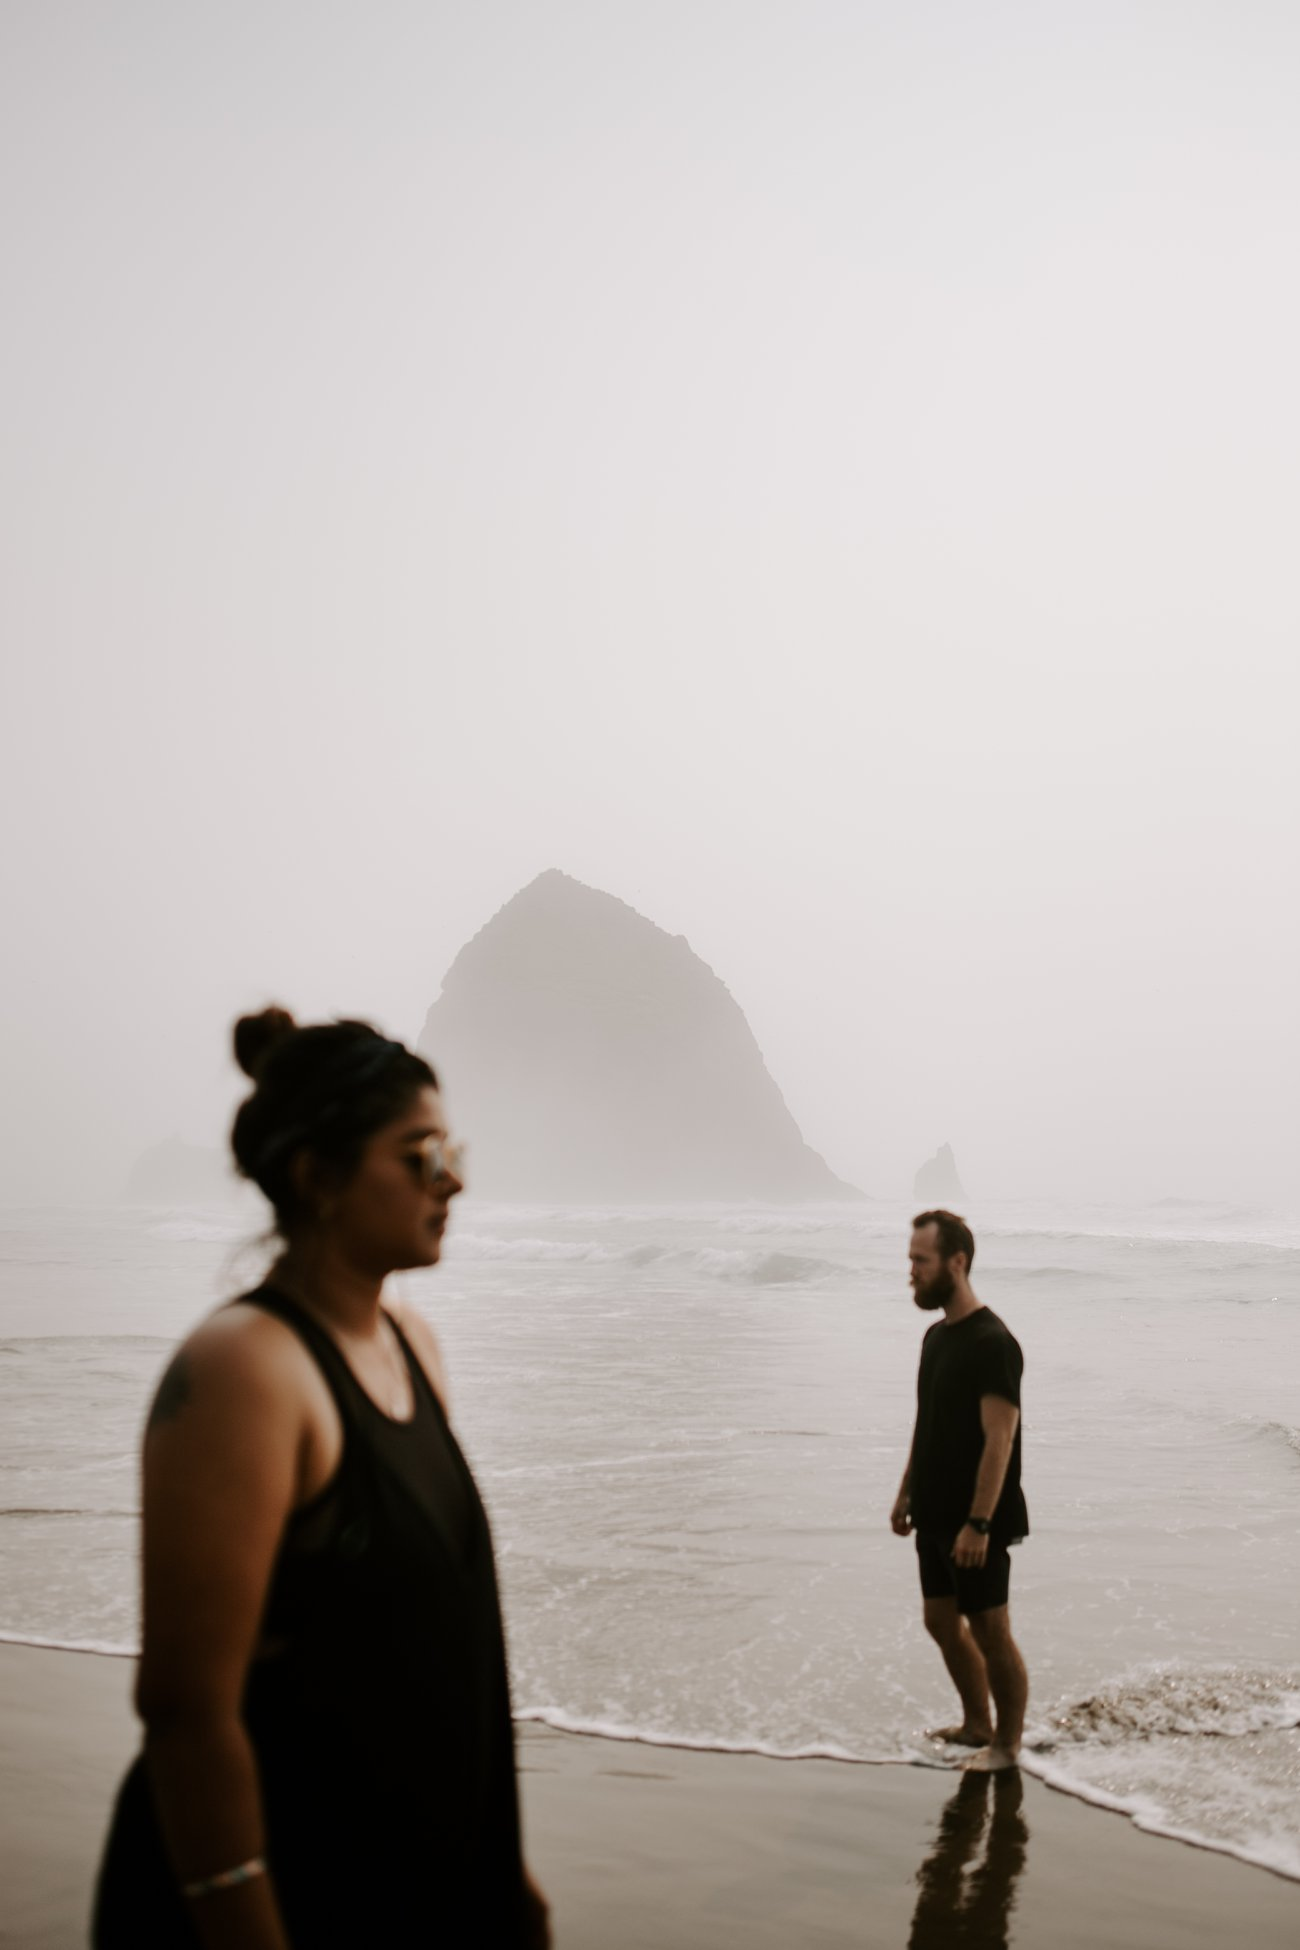 Cannon beach oregon moody creative photogaphy